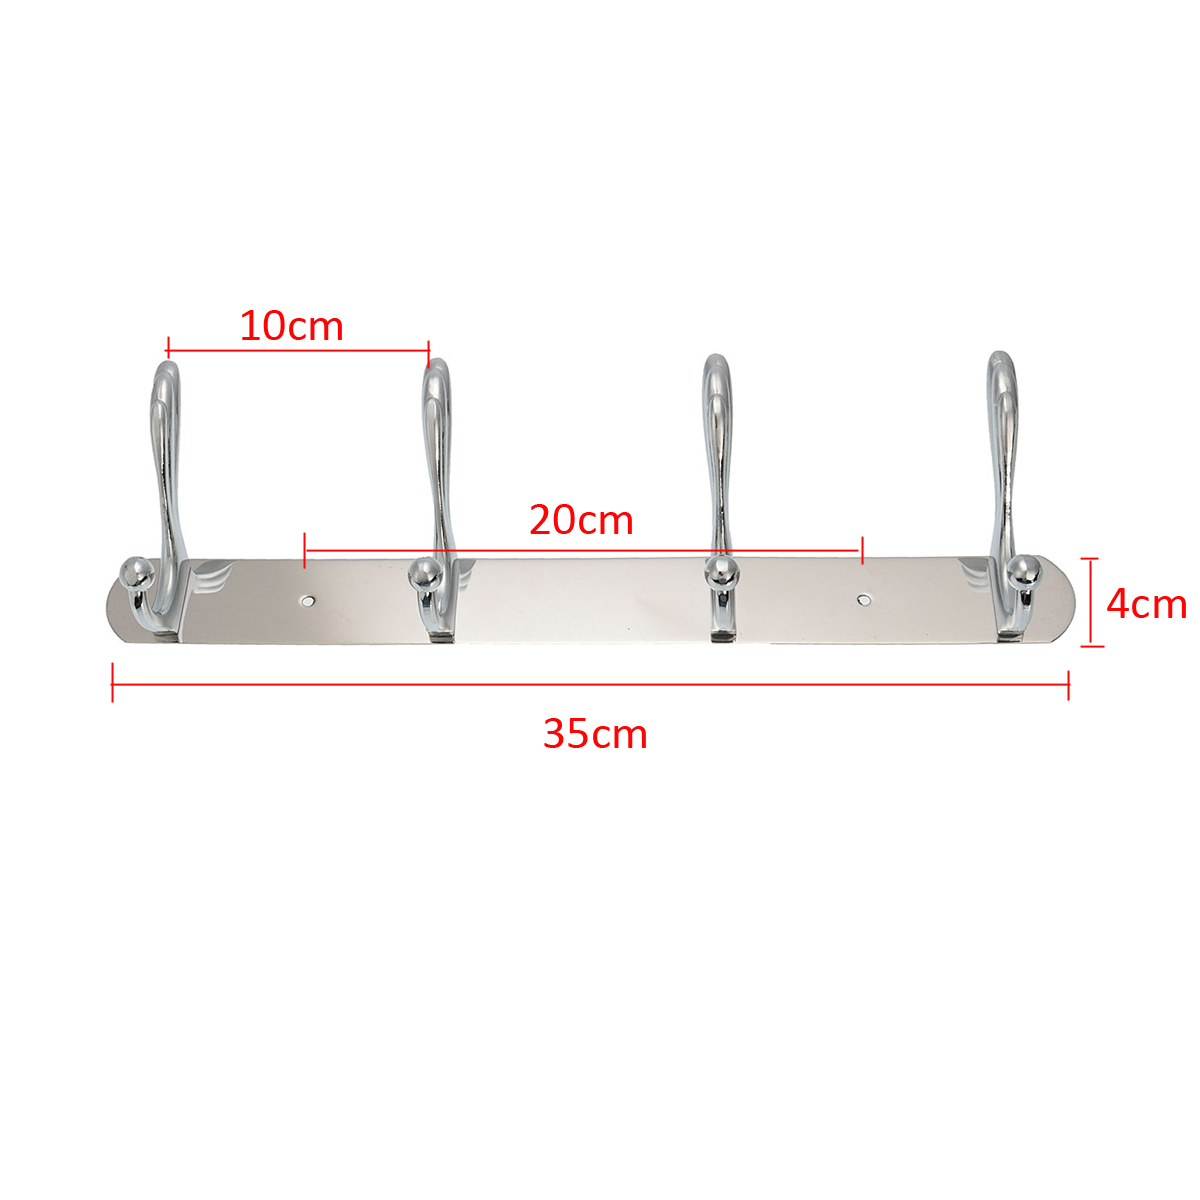 specifications 1 material stainless steel 2 size 4 hooks 3 width 4cm 4 ...